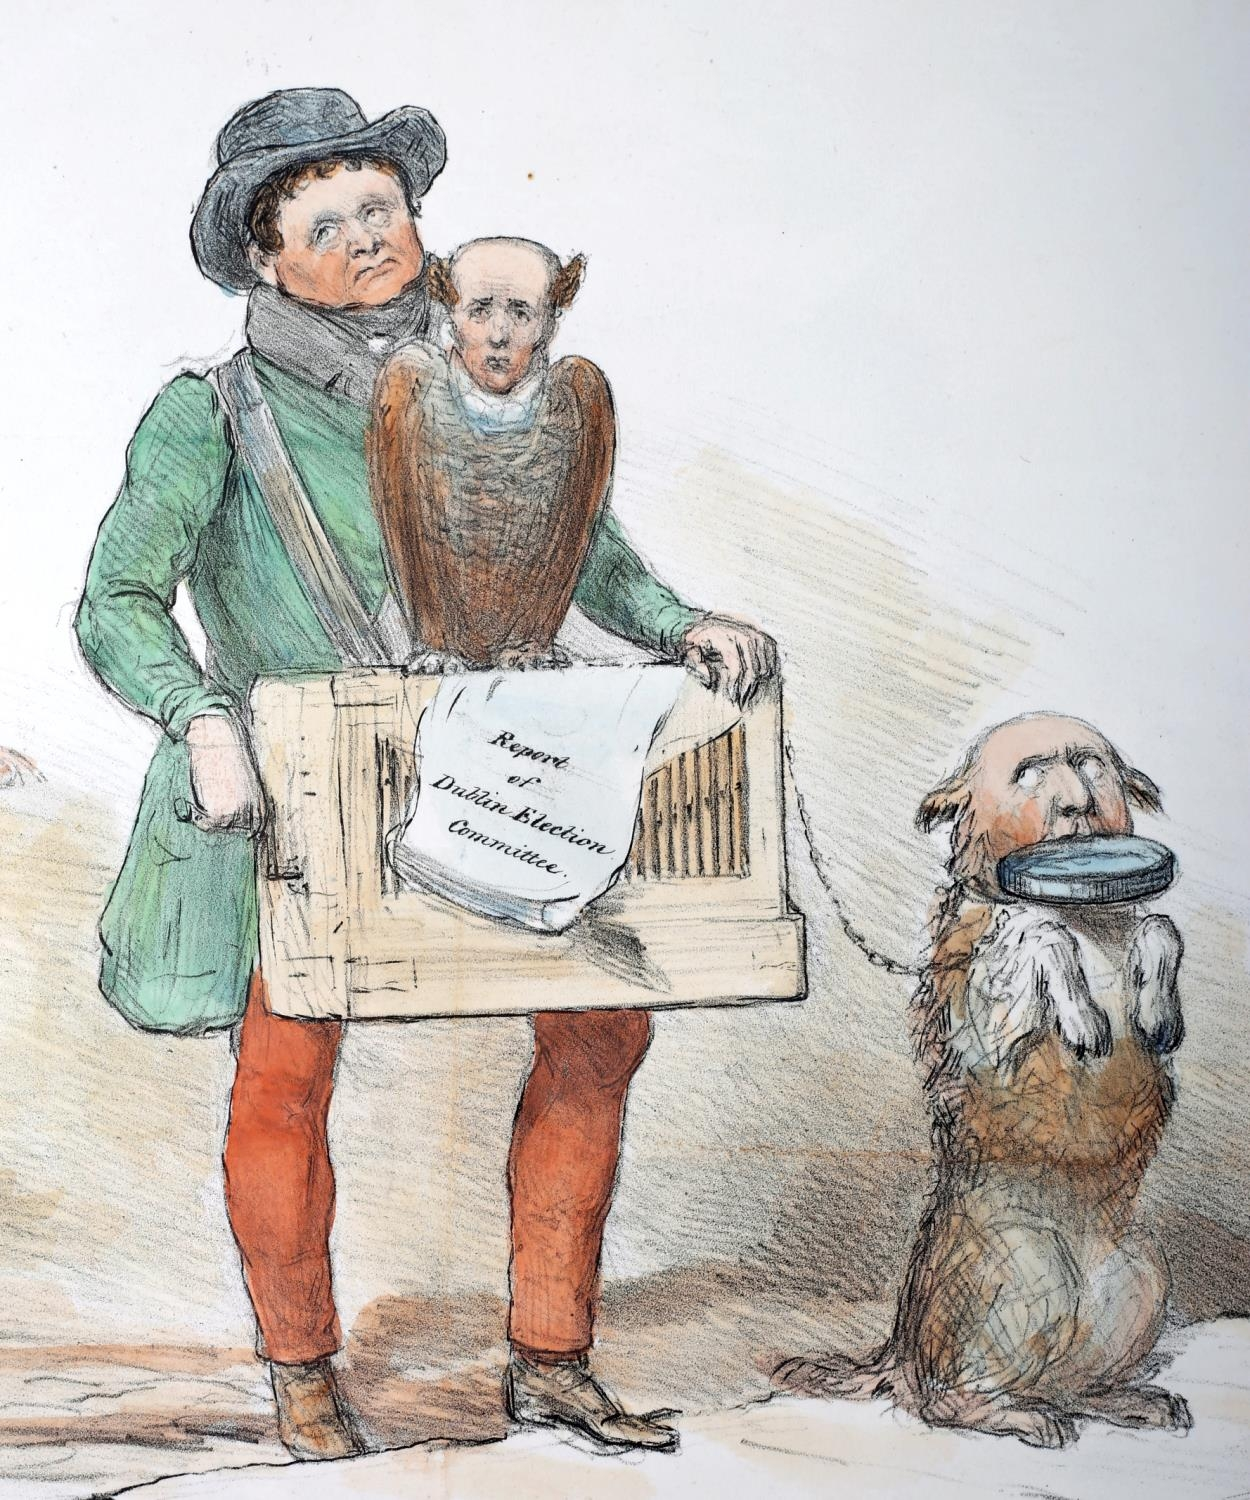 1834-36 Daniel O'Connell, four cartoons featuring the Liberator. Includes O'Connell as a large green